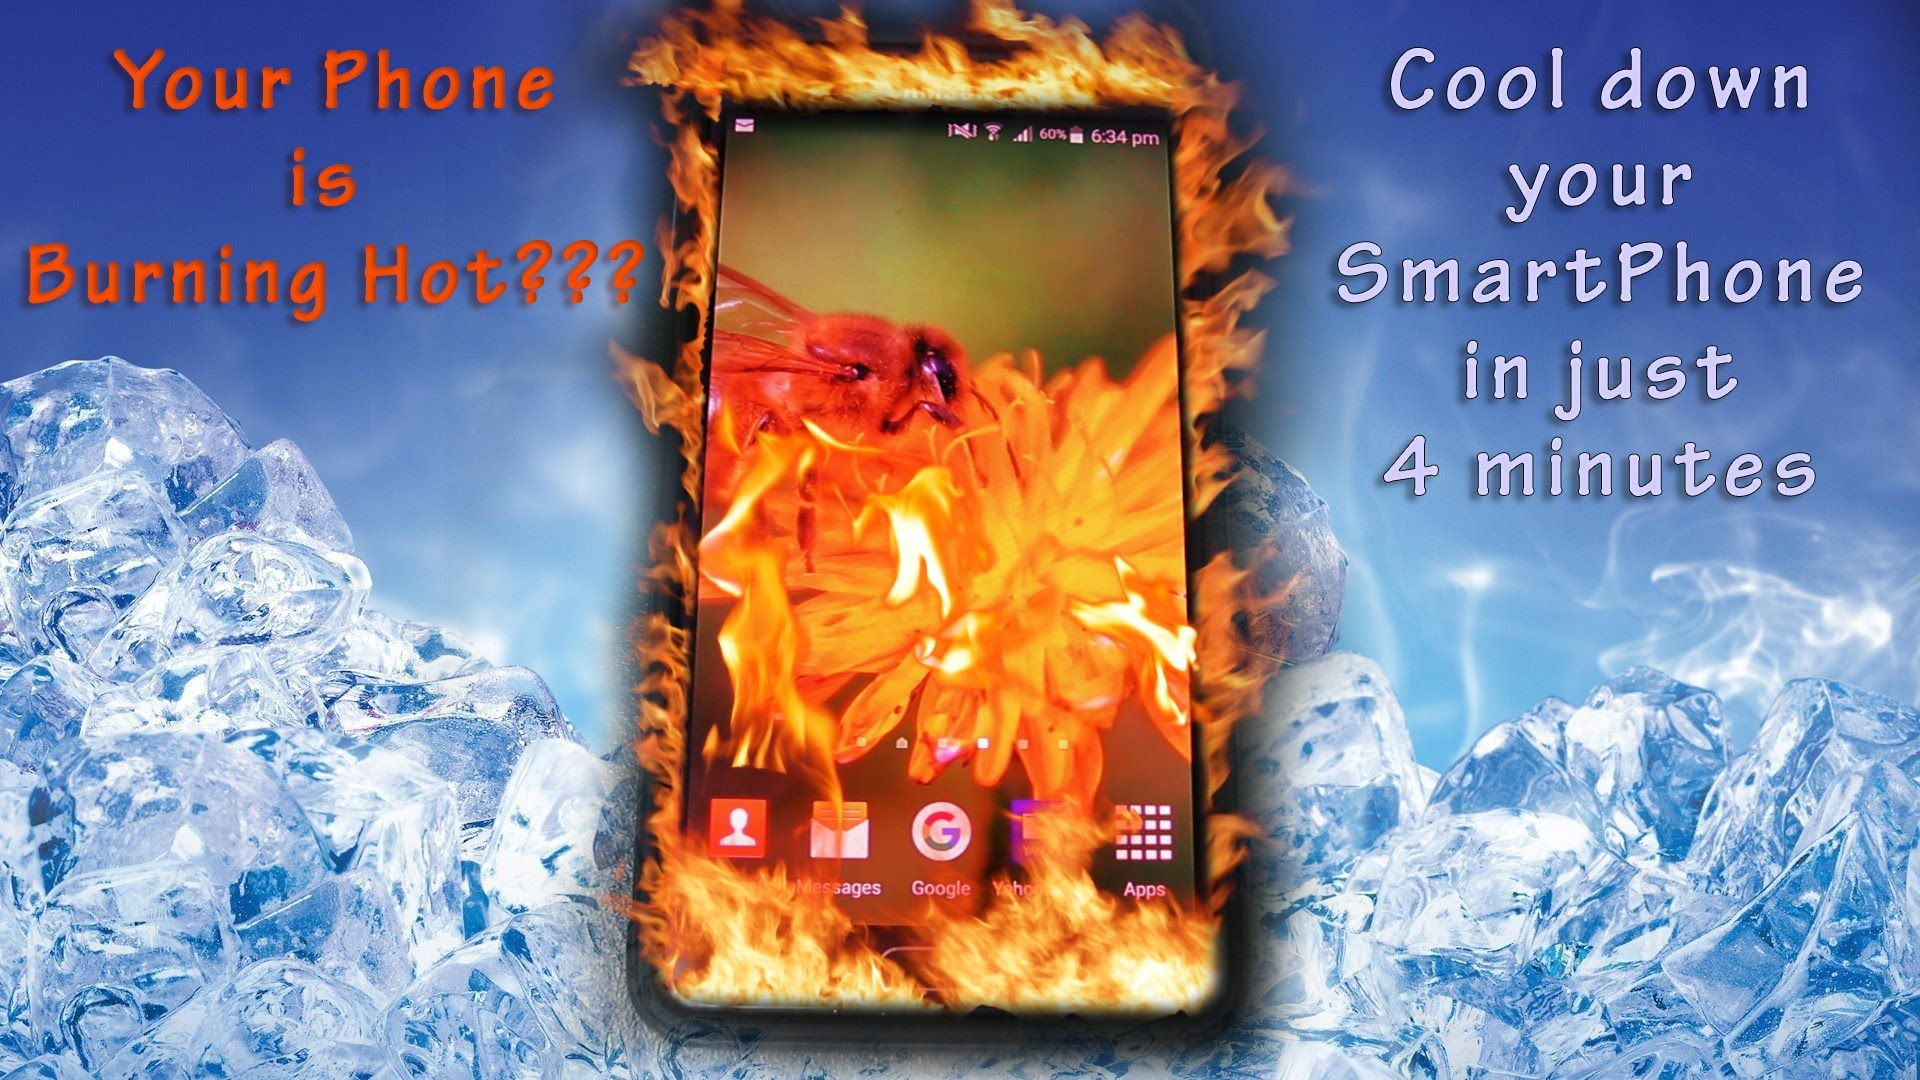 Phone is burning hot fix overheat issue phone fix you hot